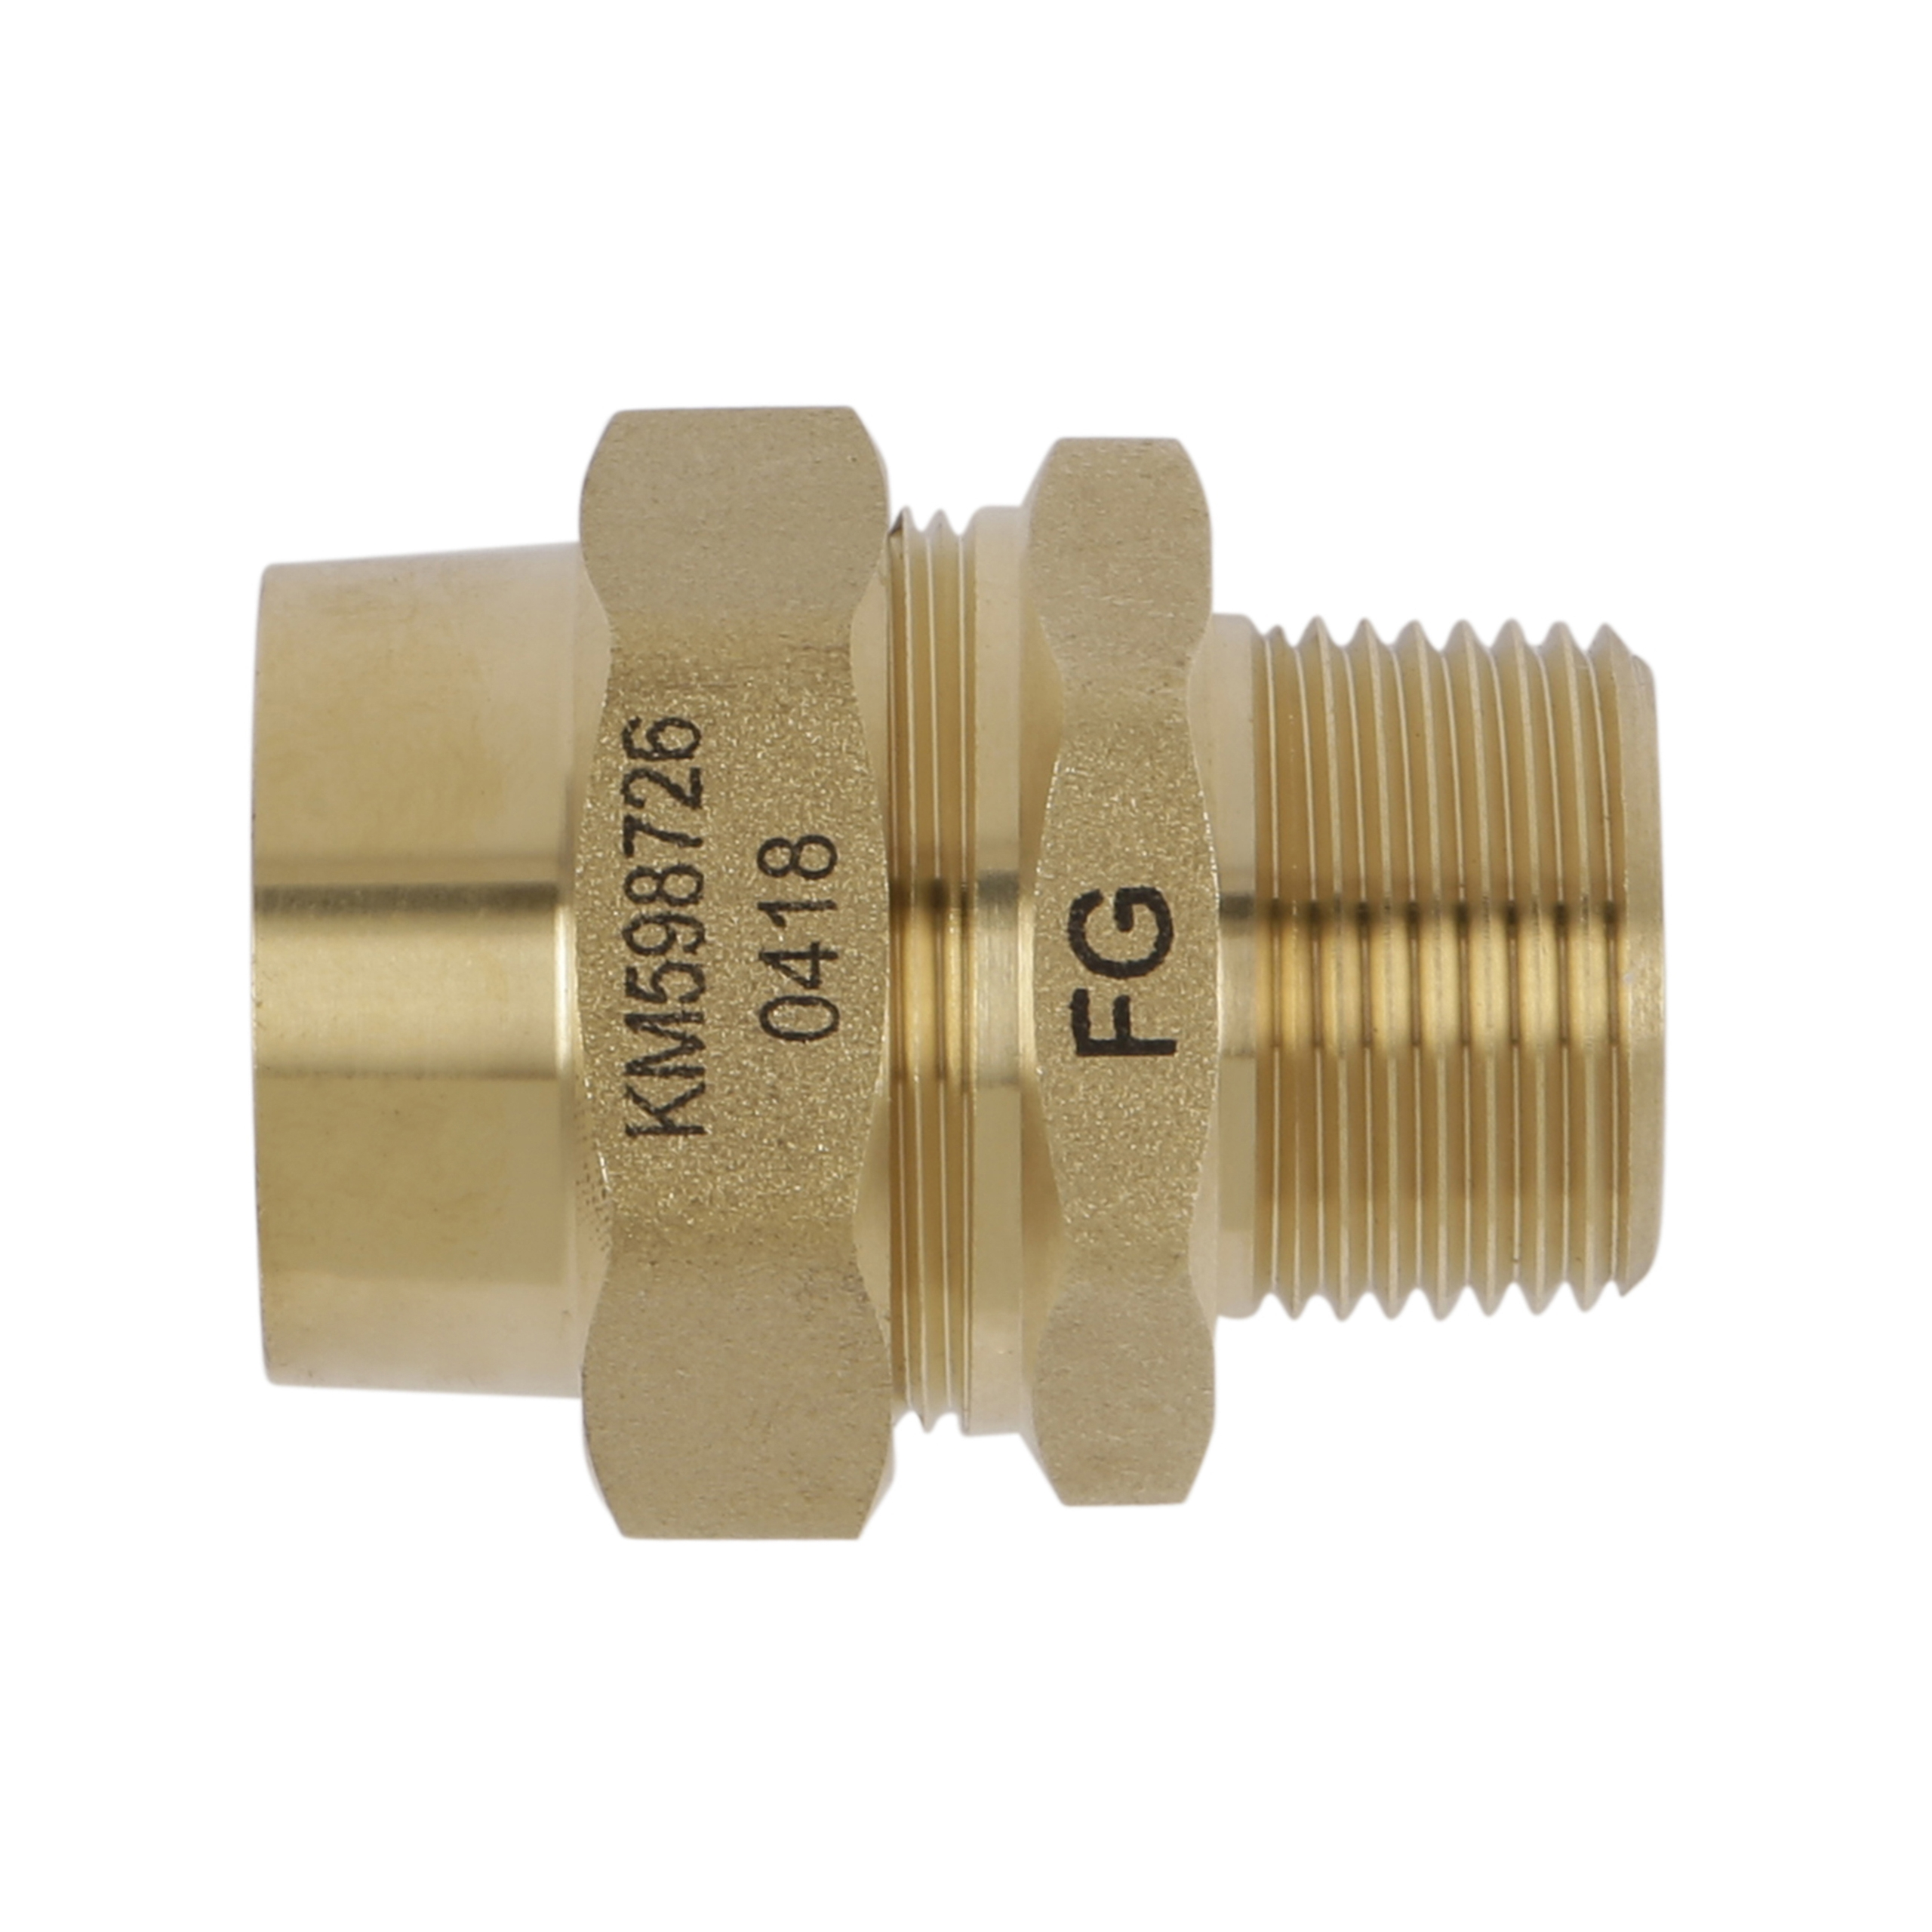 FlexiGas 22mm x 3 by 4 Inch  Male Straight Connector.jpg